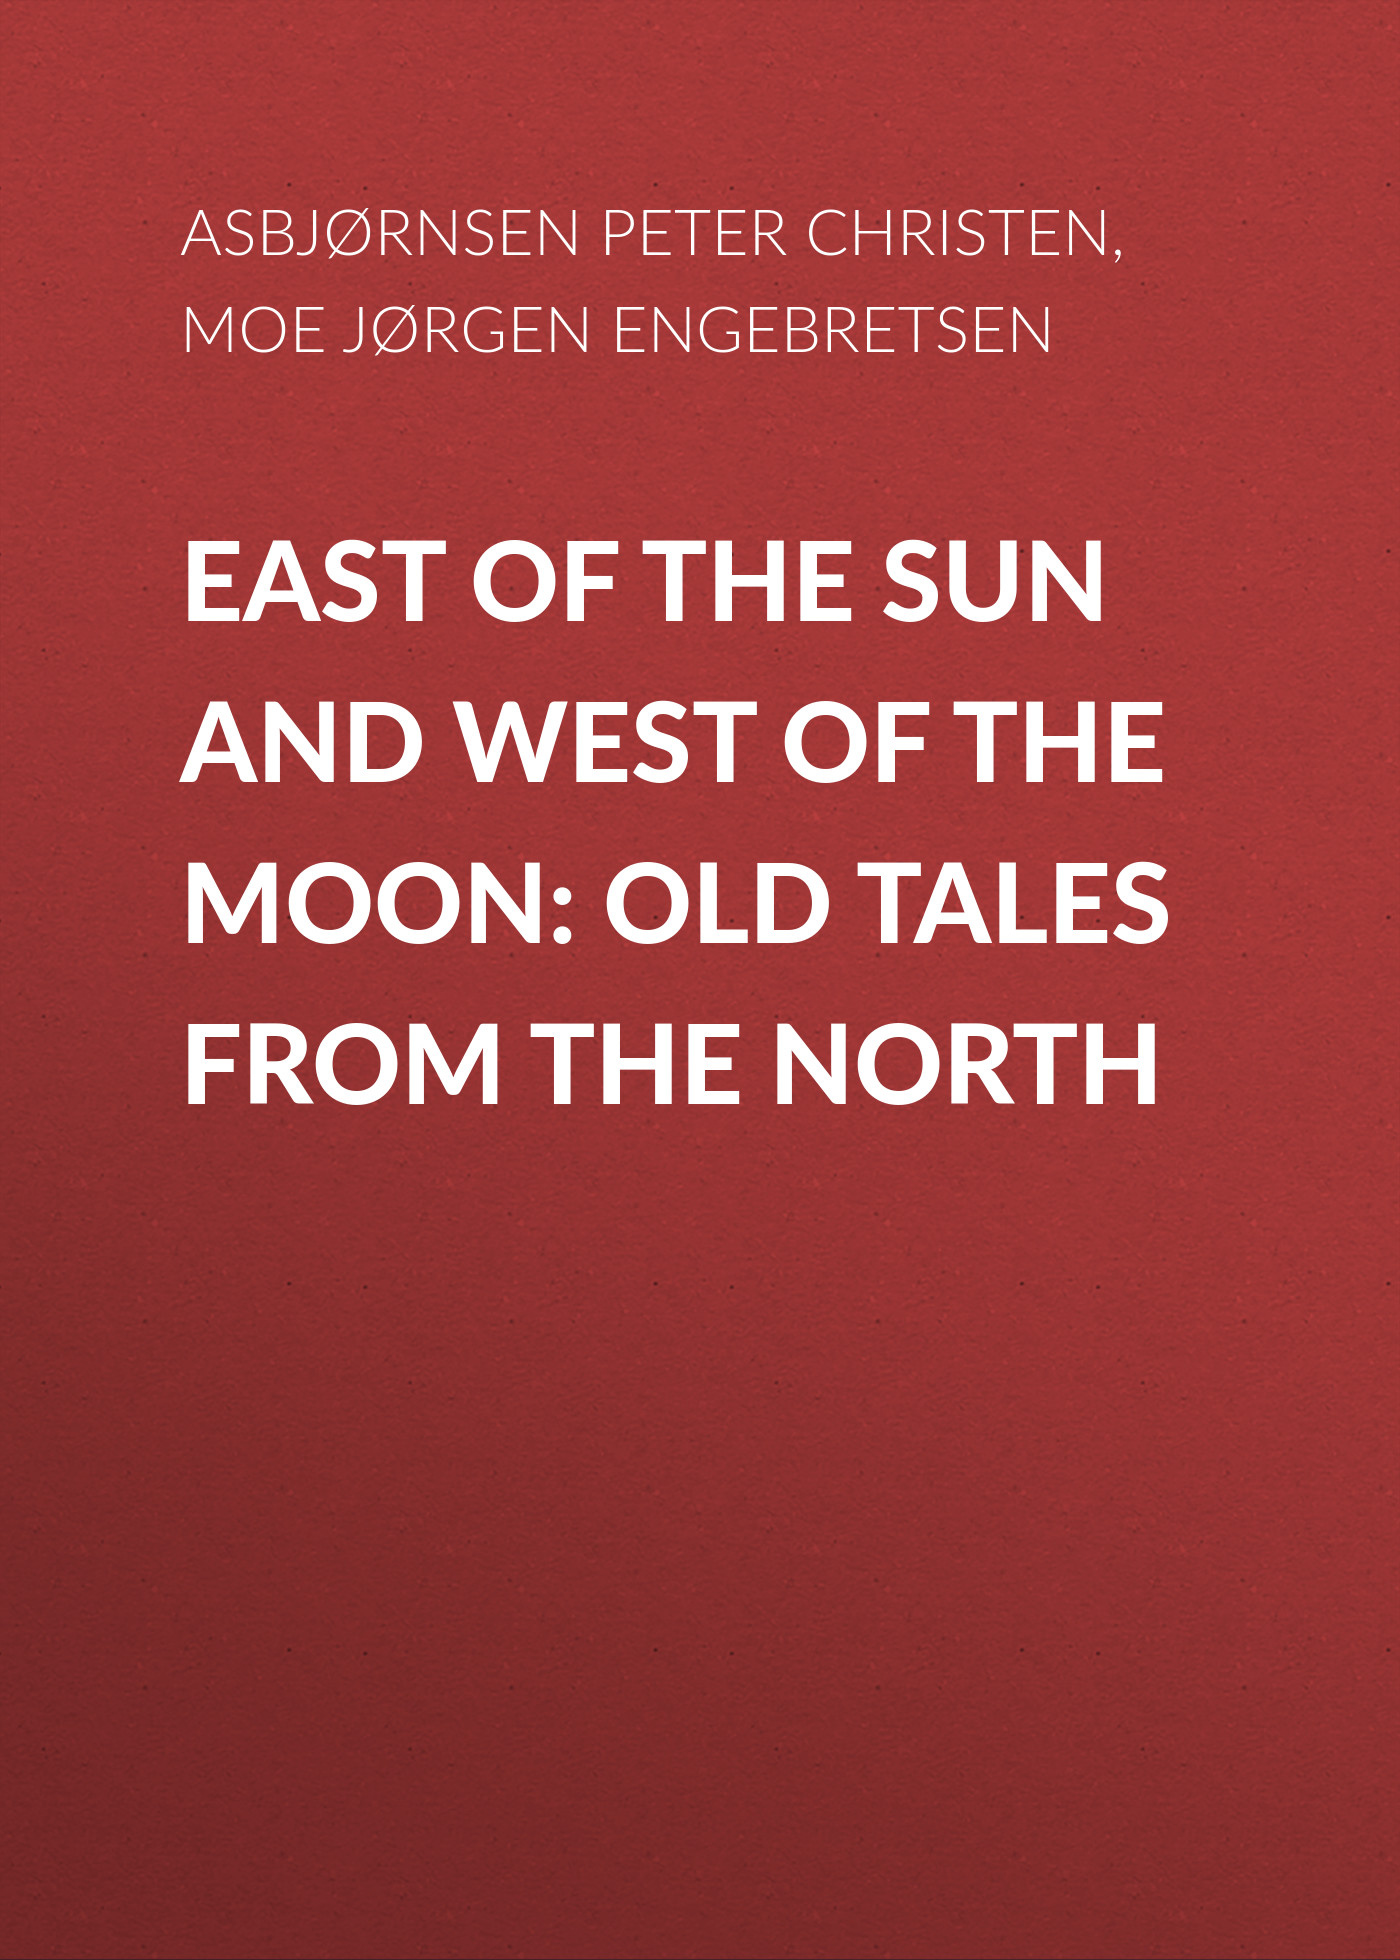 Asbjørnsen Peter Christen East of the Sun and West of the Moon: Old Tales from the North cro hannover